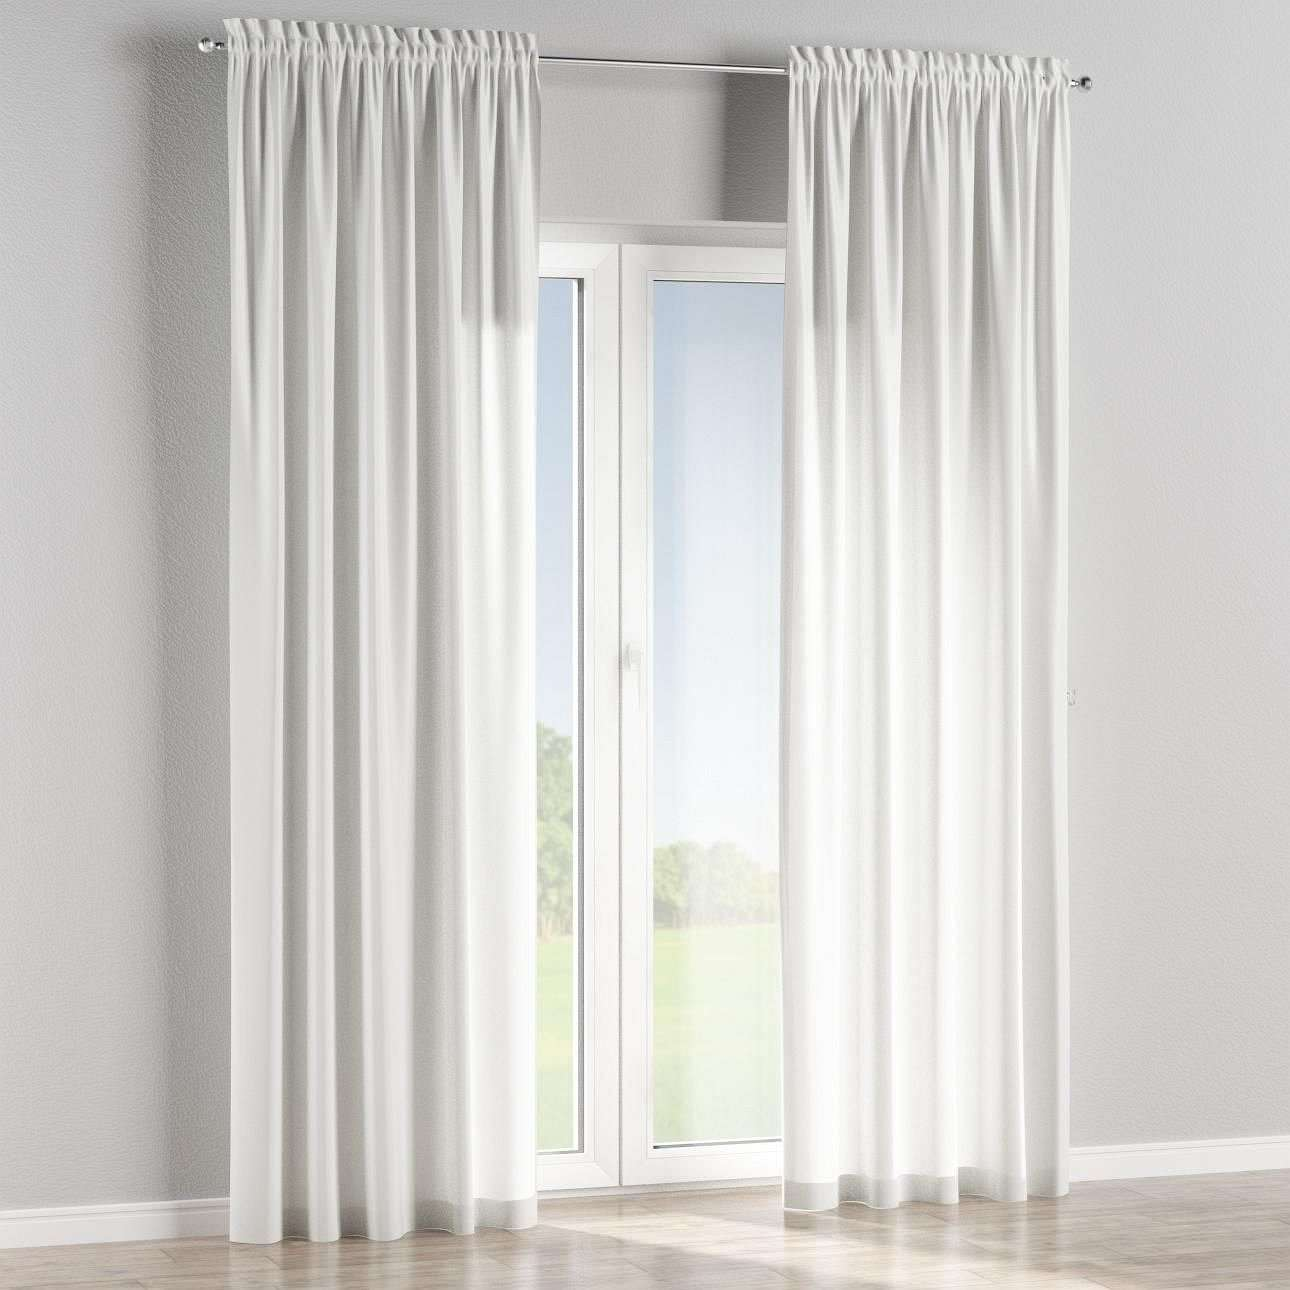 Slot and frill lined curtains in collection Odisea, fabric: 412-53